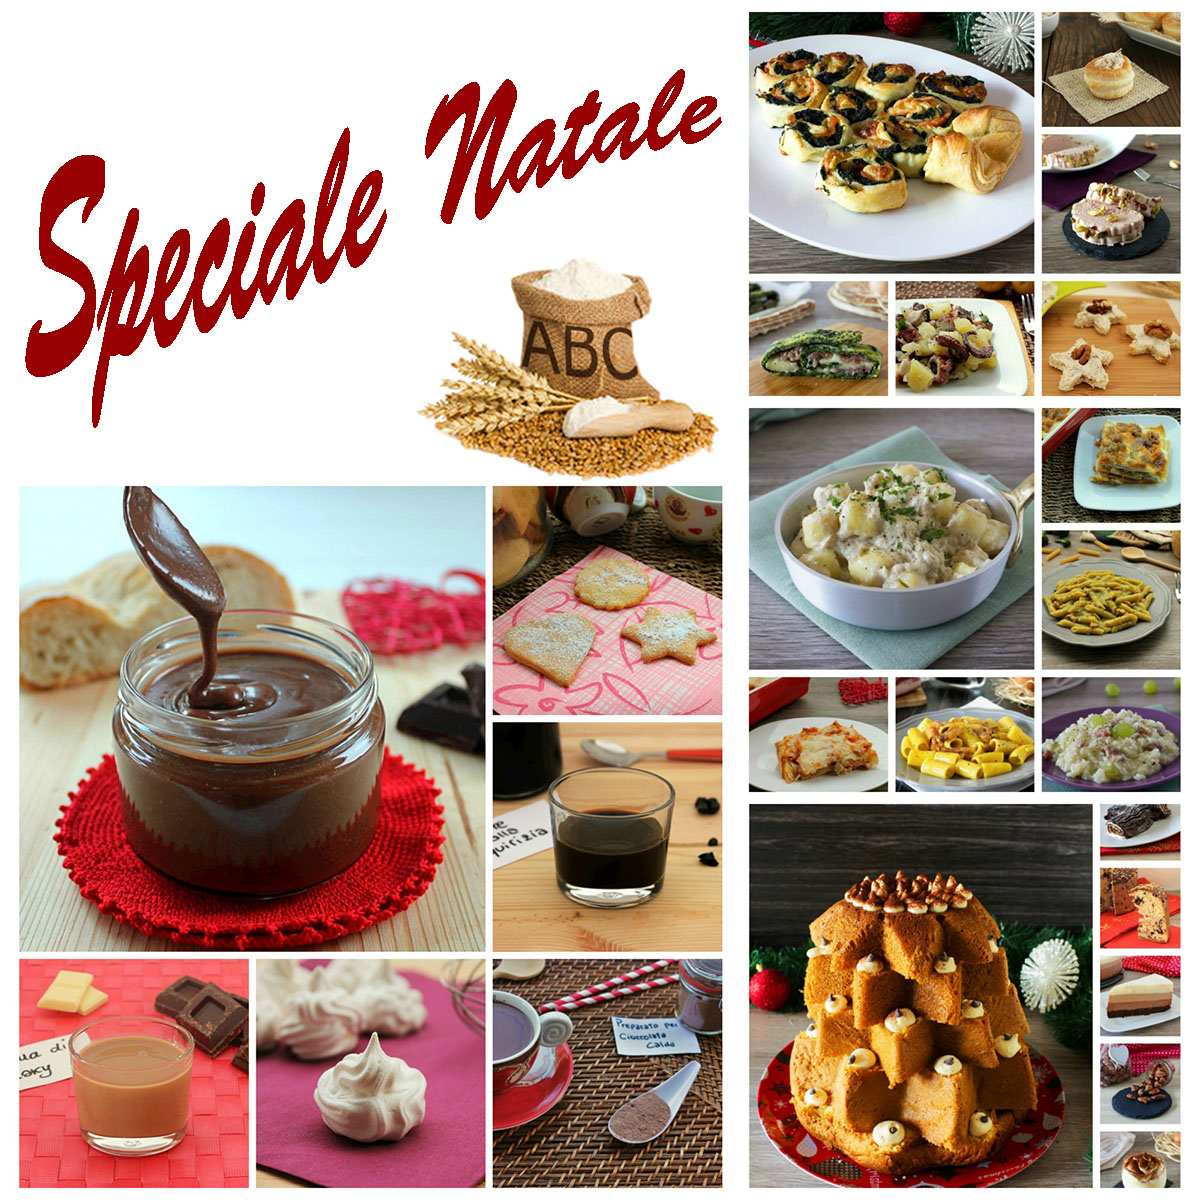 Speciale Natale Ricette.Speciale Natale